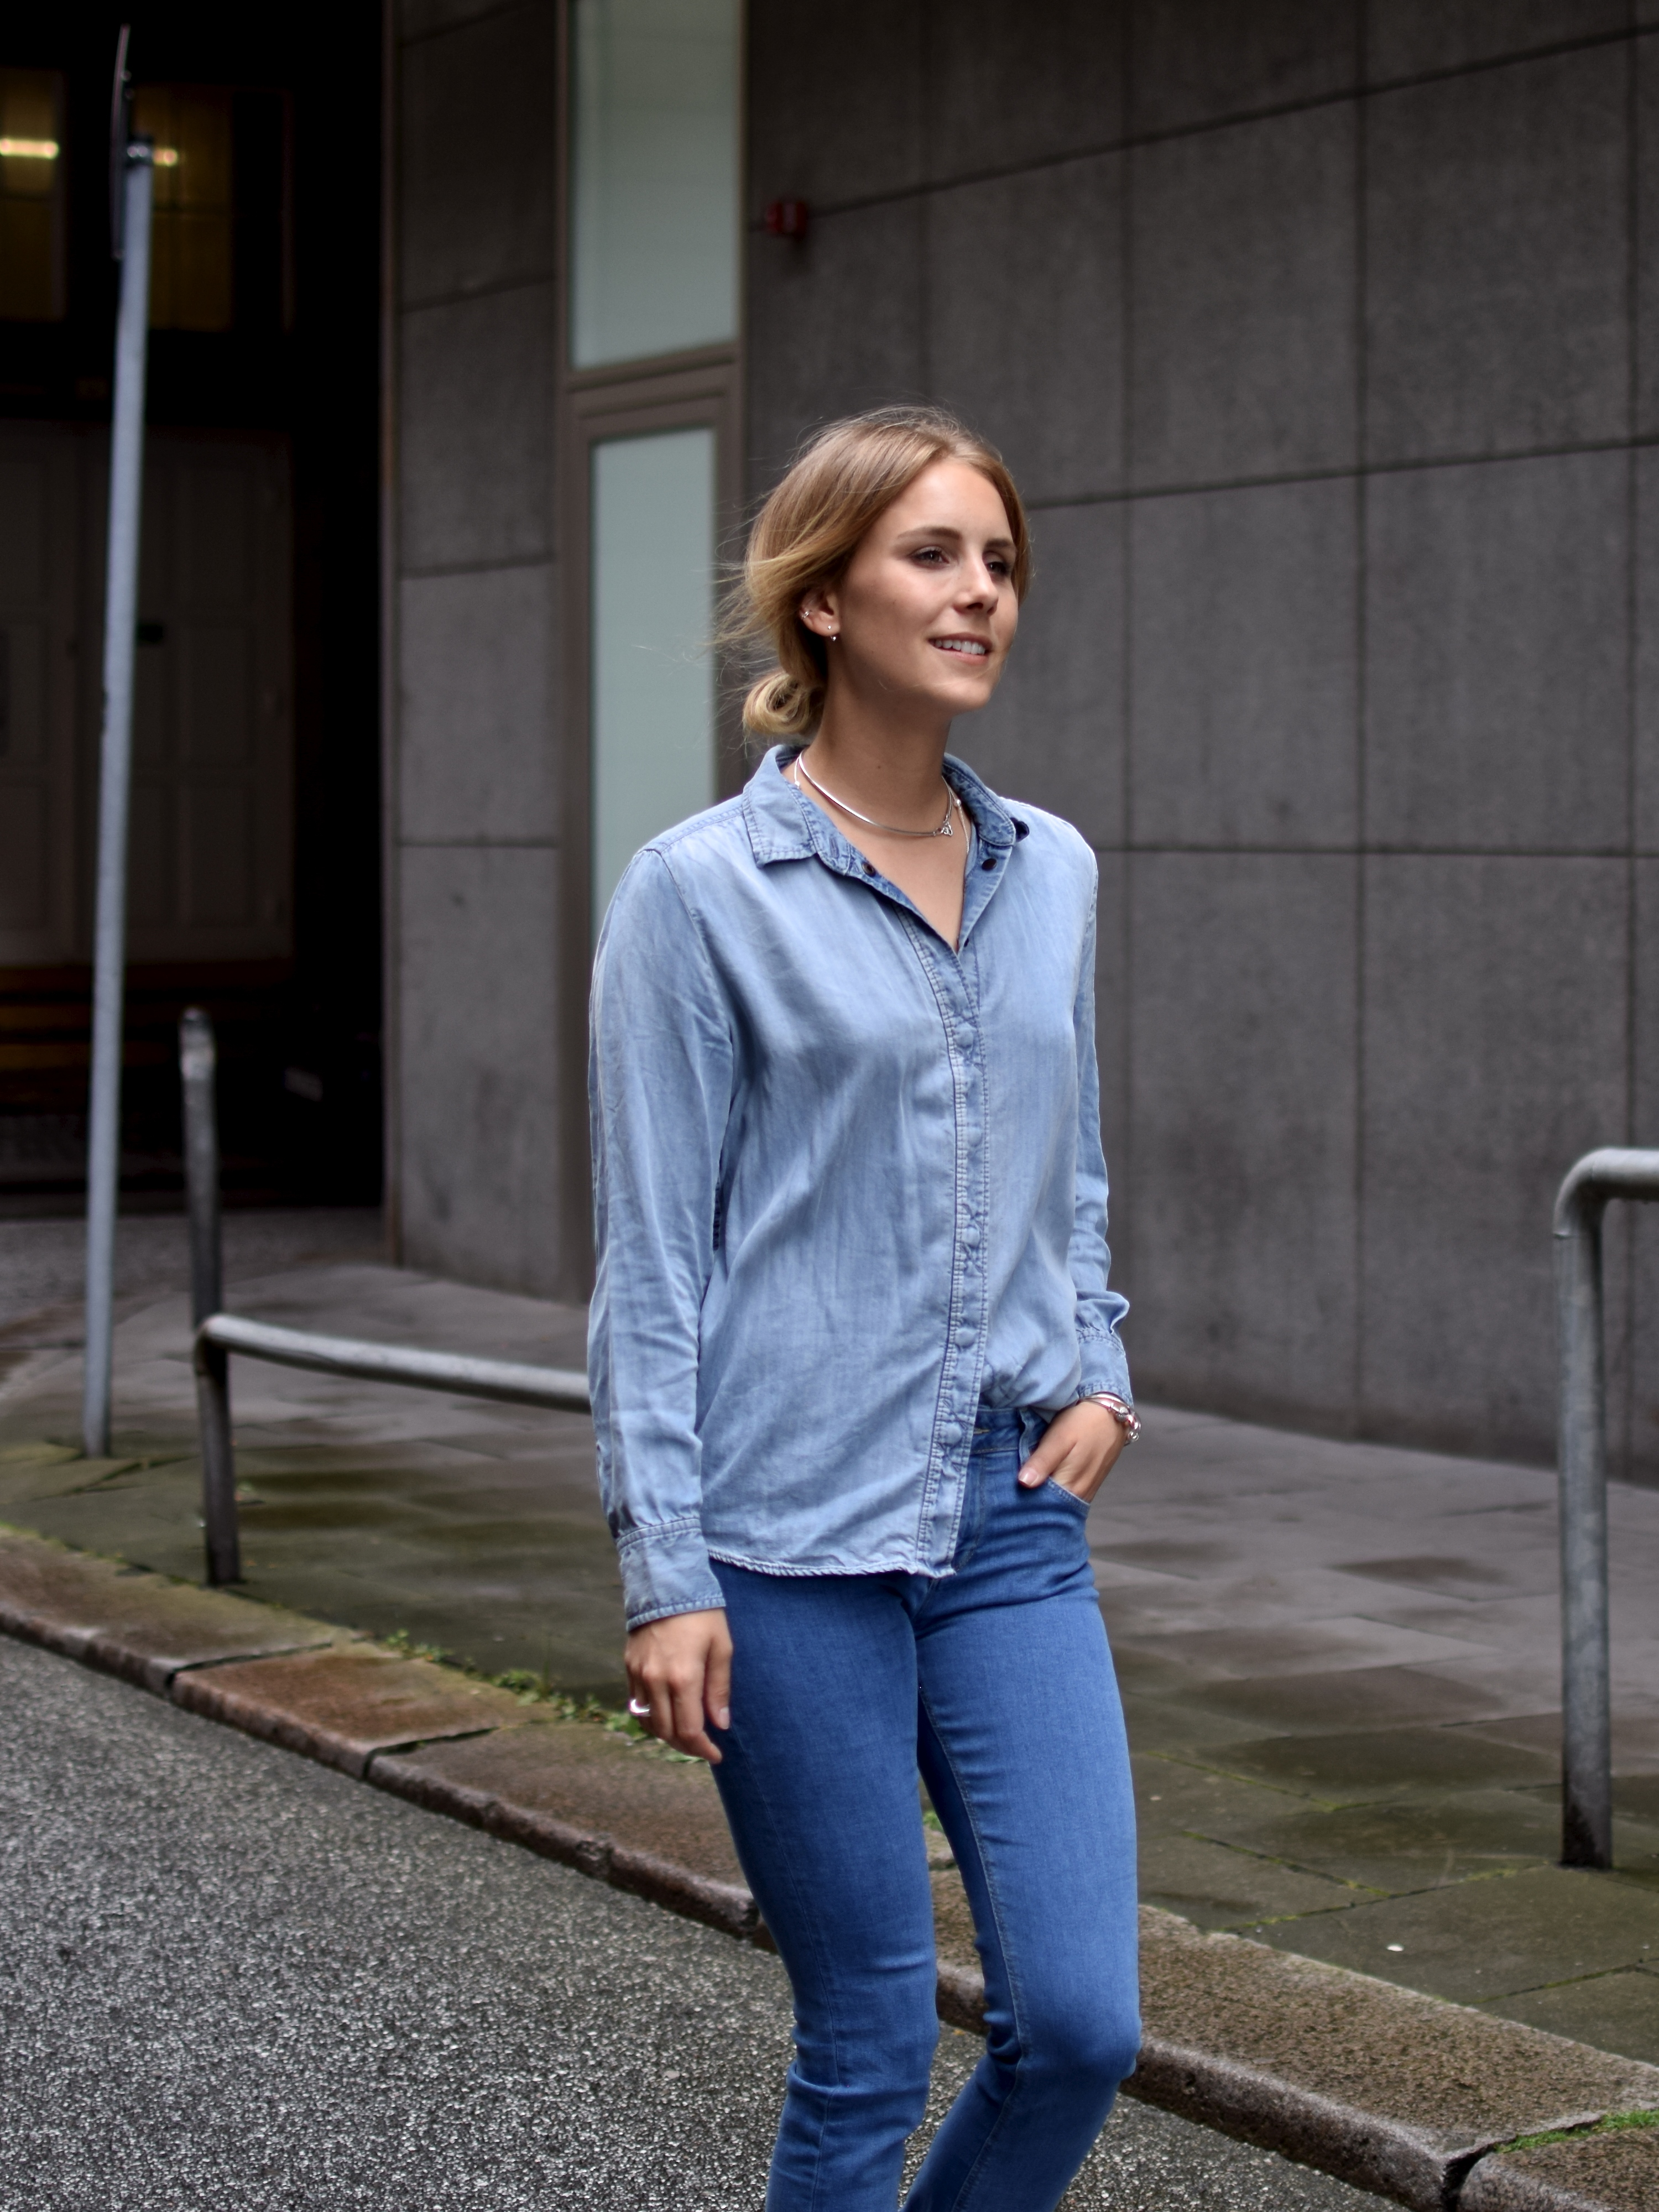 c028226bbb08 Jeans Outfit Hamburg - Shoppisticated